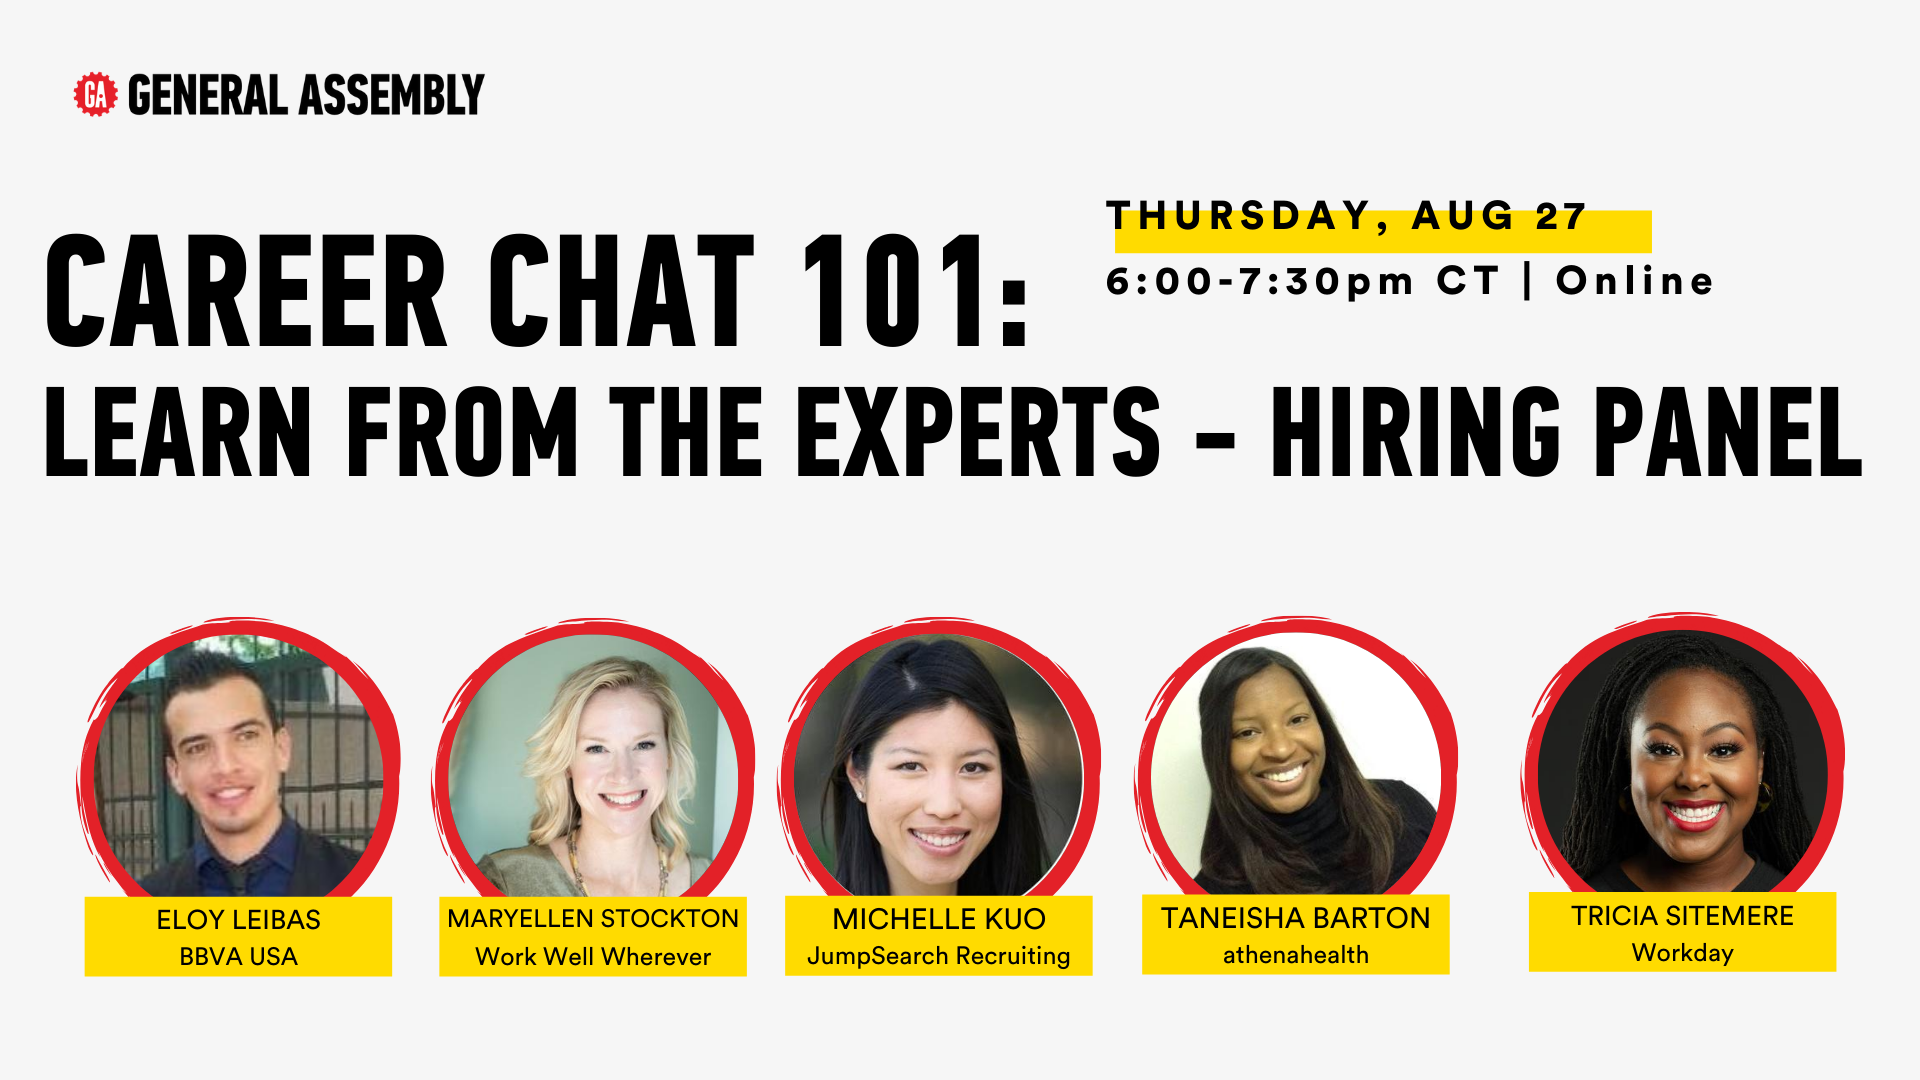 Career Chat 101: Learn from the Experts - Hiring Panel